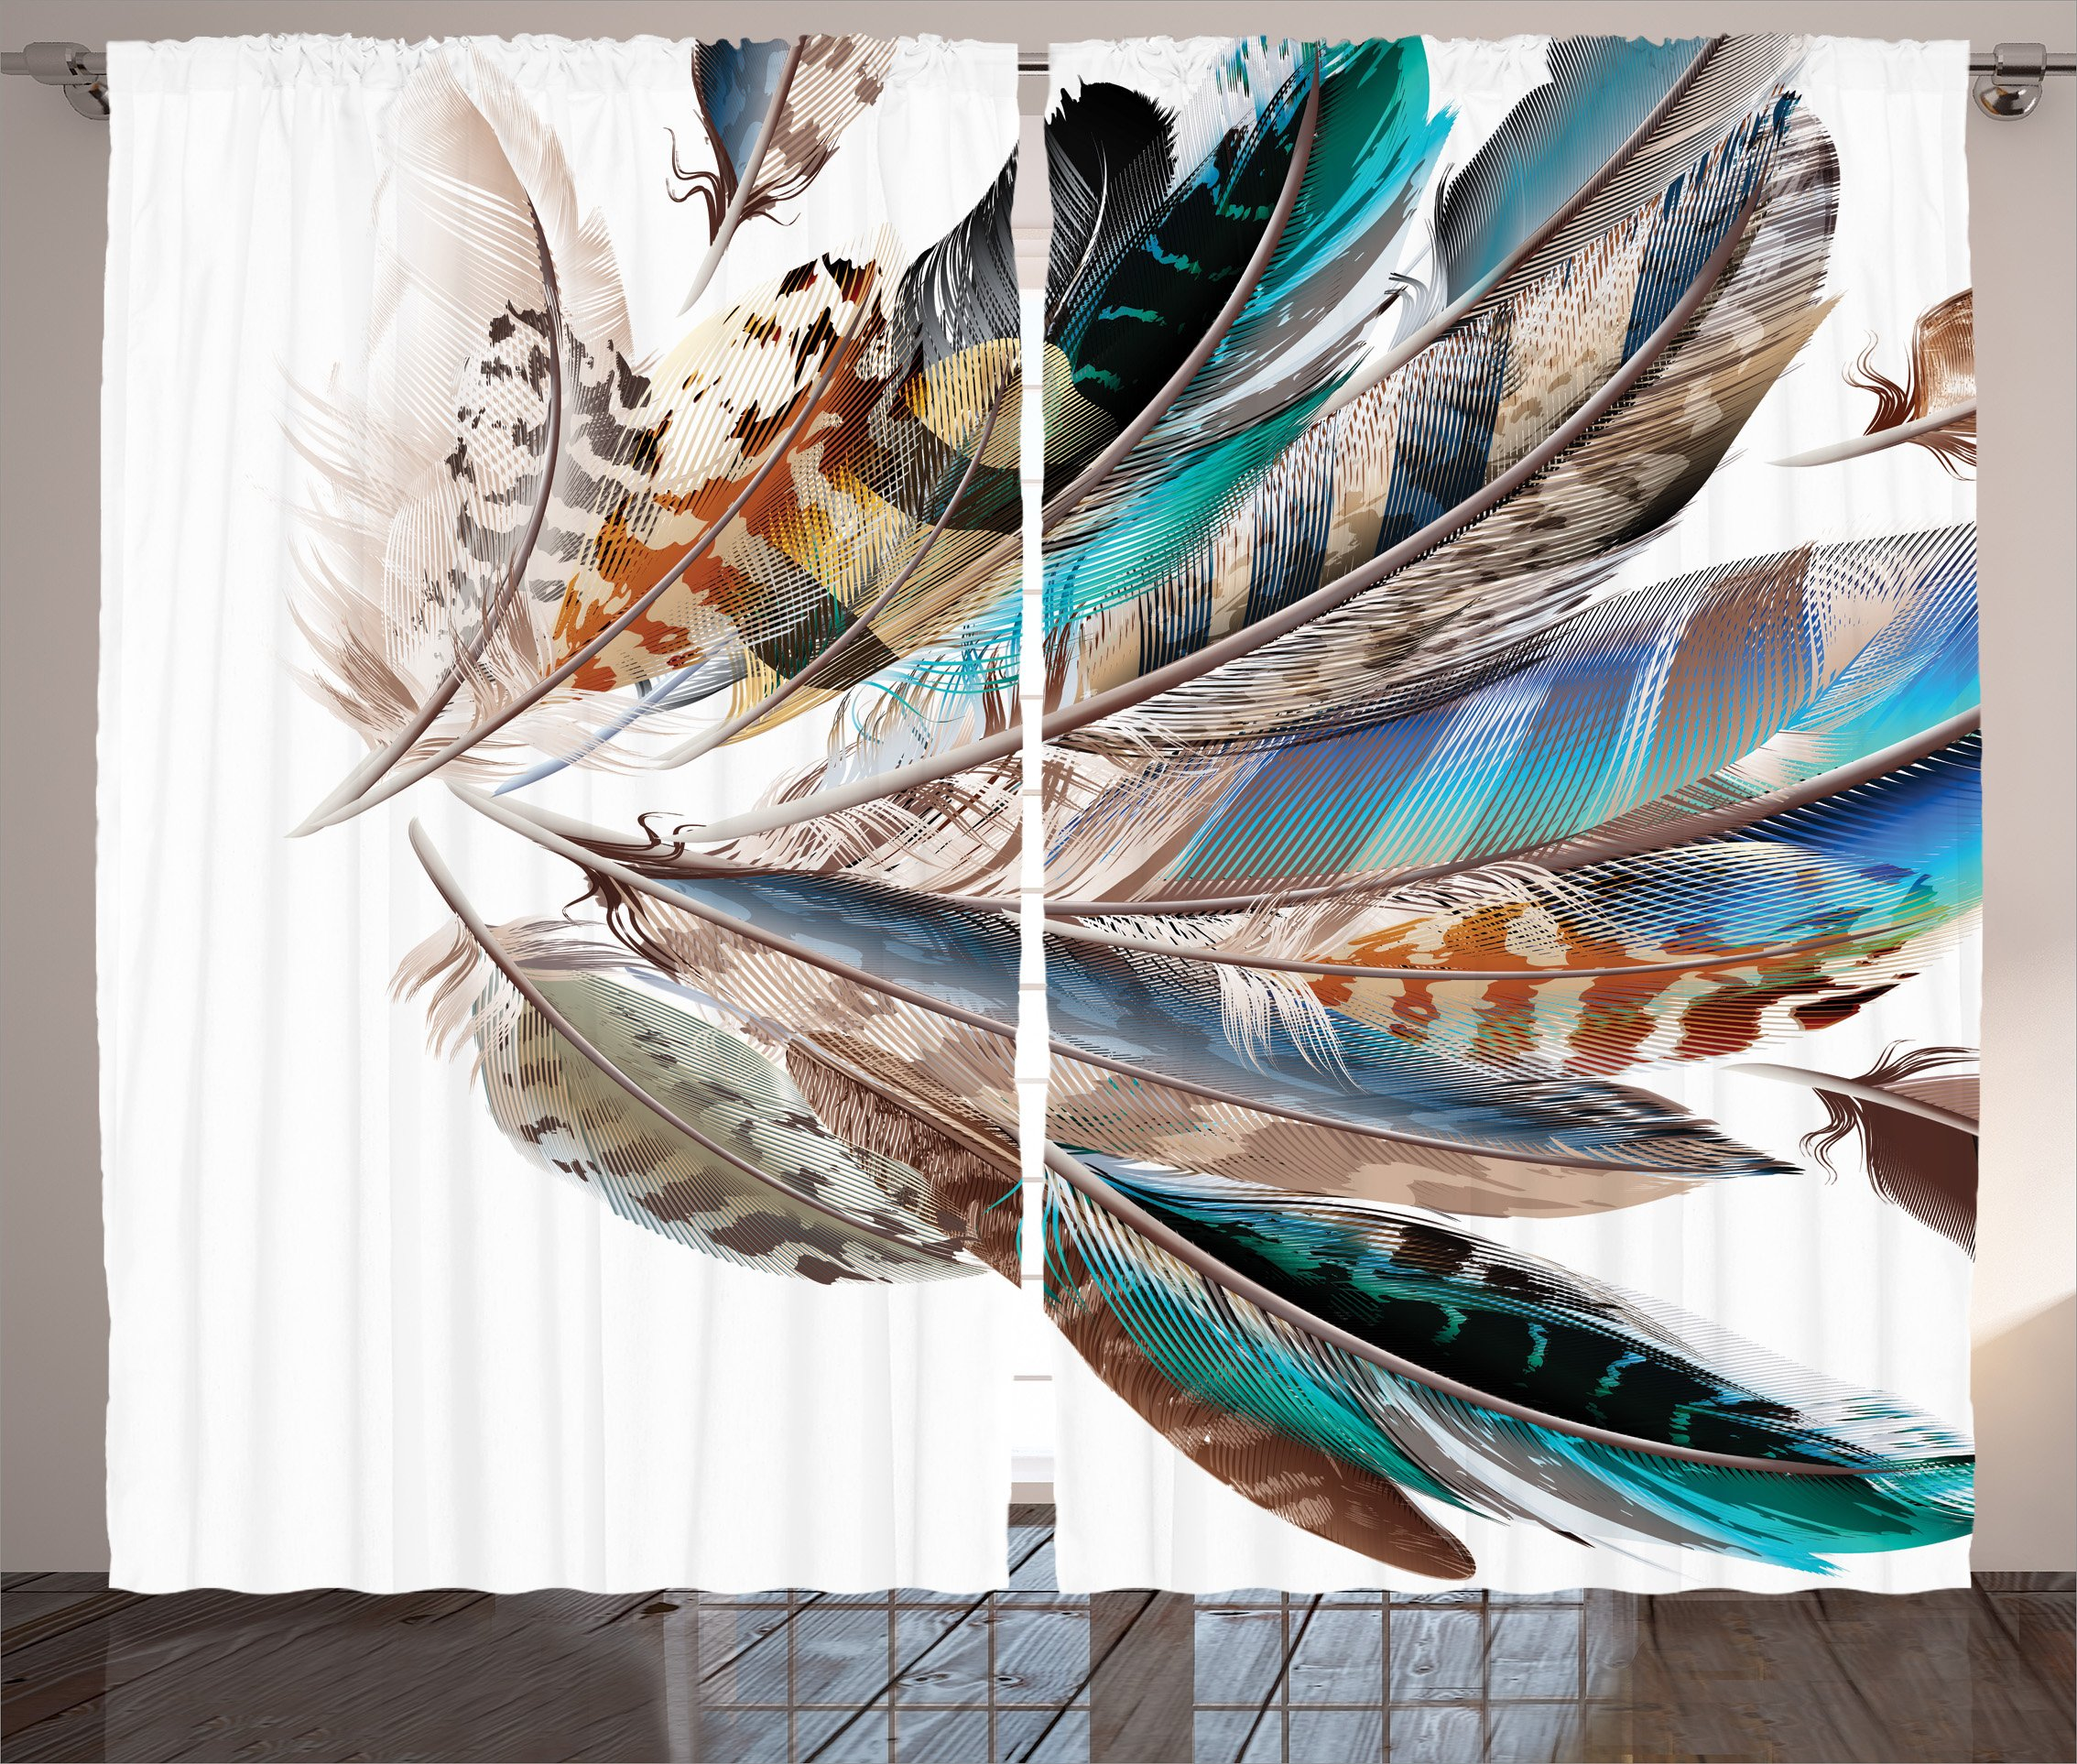 Ambesonne Feather House Decor Curtains, Vaned Types and Natal Contour Flight Feathers Animal Skin Element Print, Living Room Bedroom Window Drapes 2 Panel Set, 108 W X 108 L inches, Teal Brown by Ambesonne